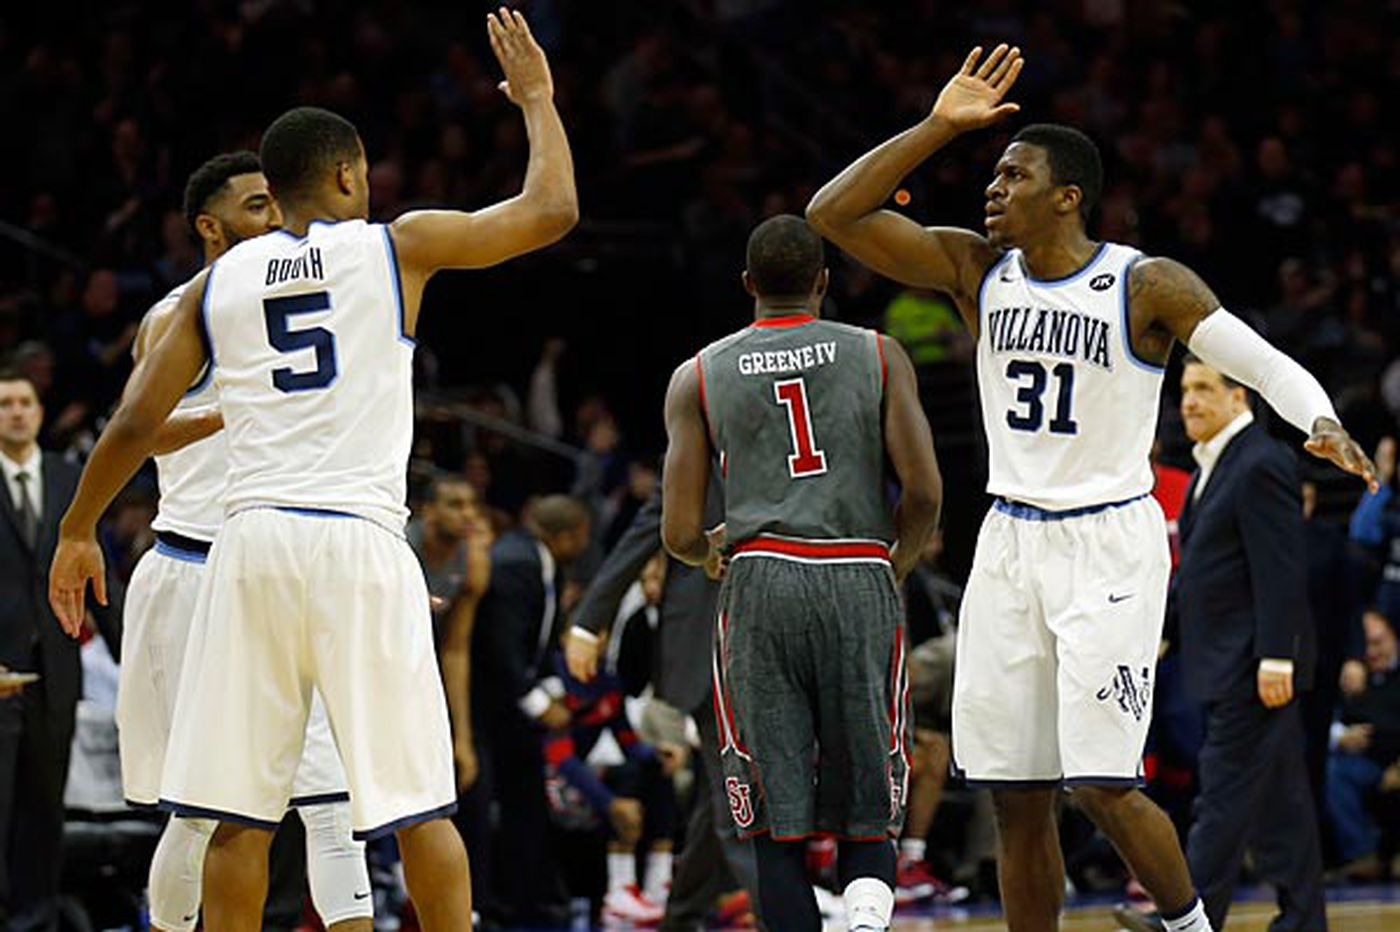 Villanova begins Big East tourney with No. 1 NCAA seed on line